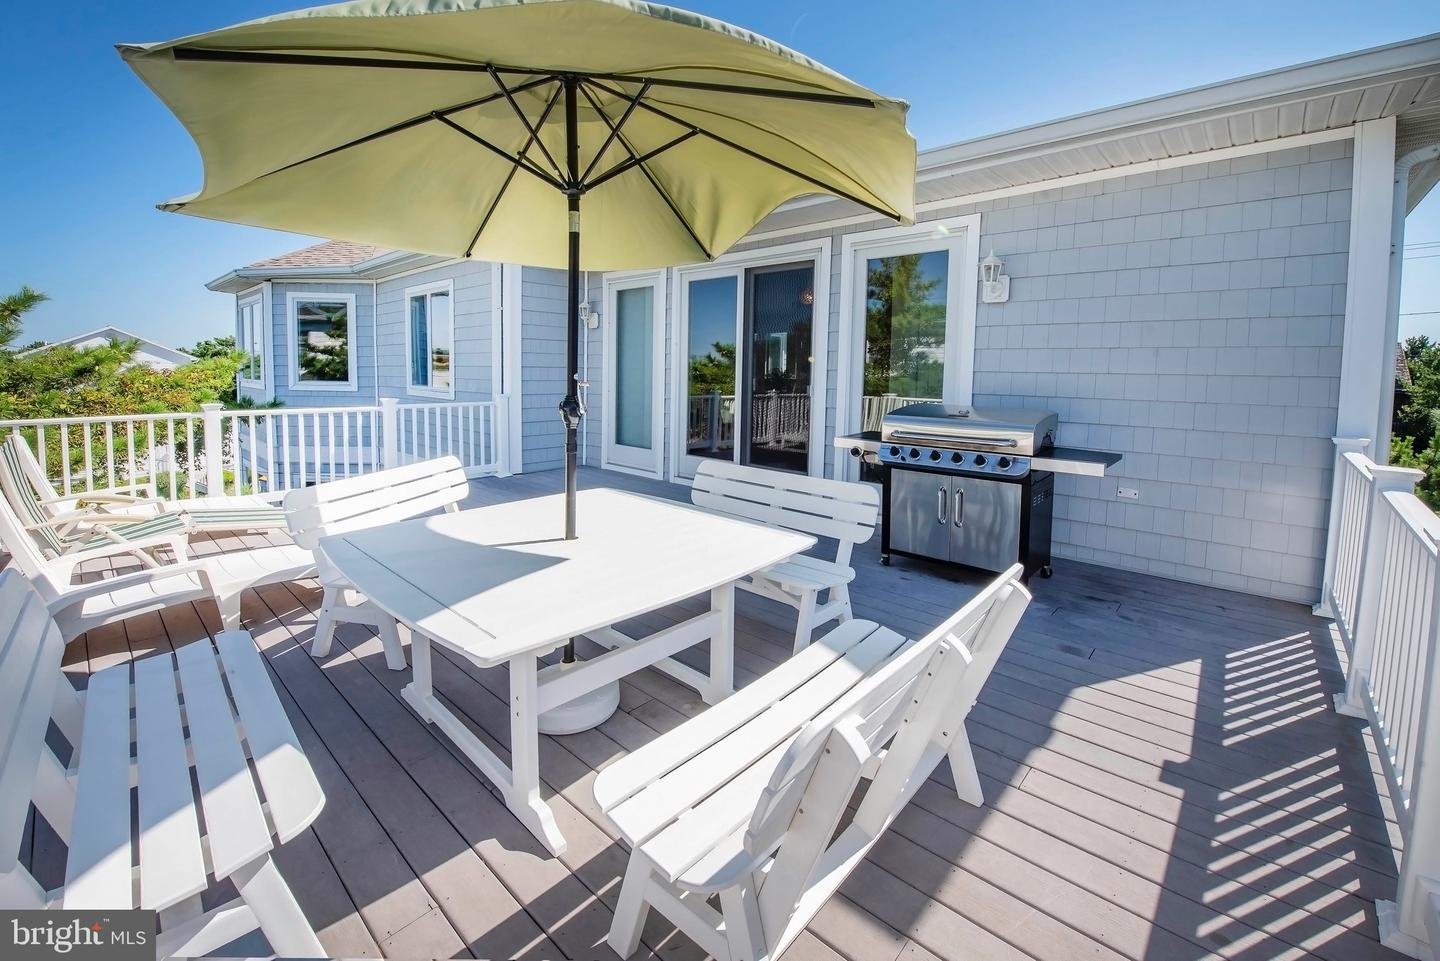 DESU147280-302007866523-2019-08-31-13-42-10 810 Bunting Ave | Fenwick Island, De Real Estate For Sale | MLS# Desu147280  - Suzanne Macnab